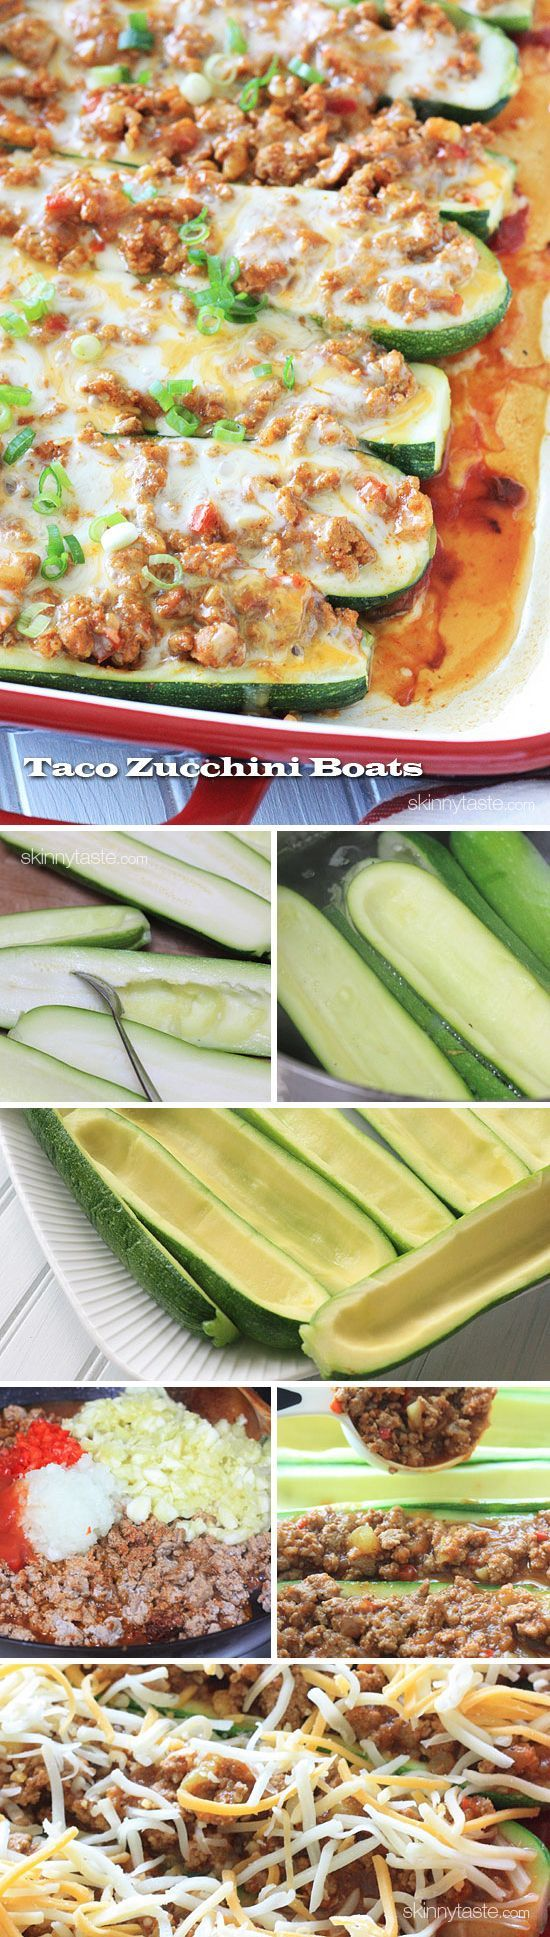 For a summer spin on taco night try these turkey taco stuffed zucchinis!